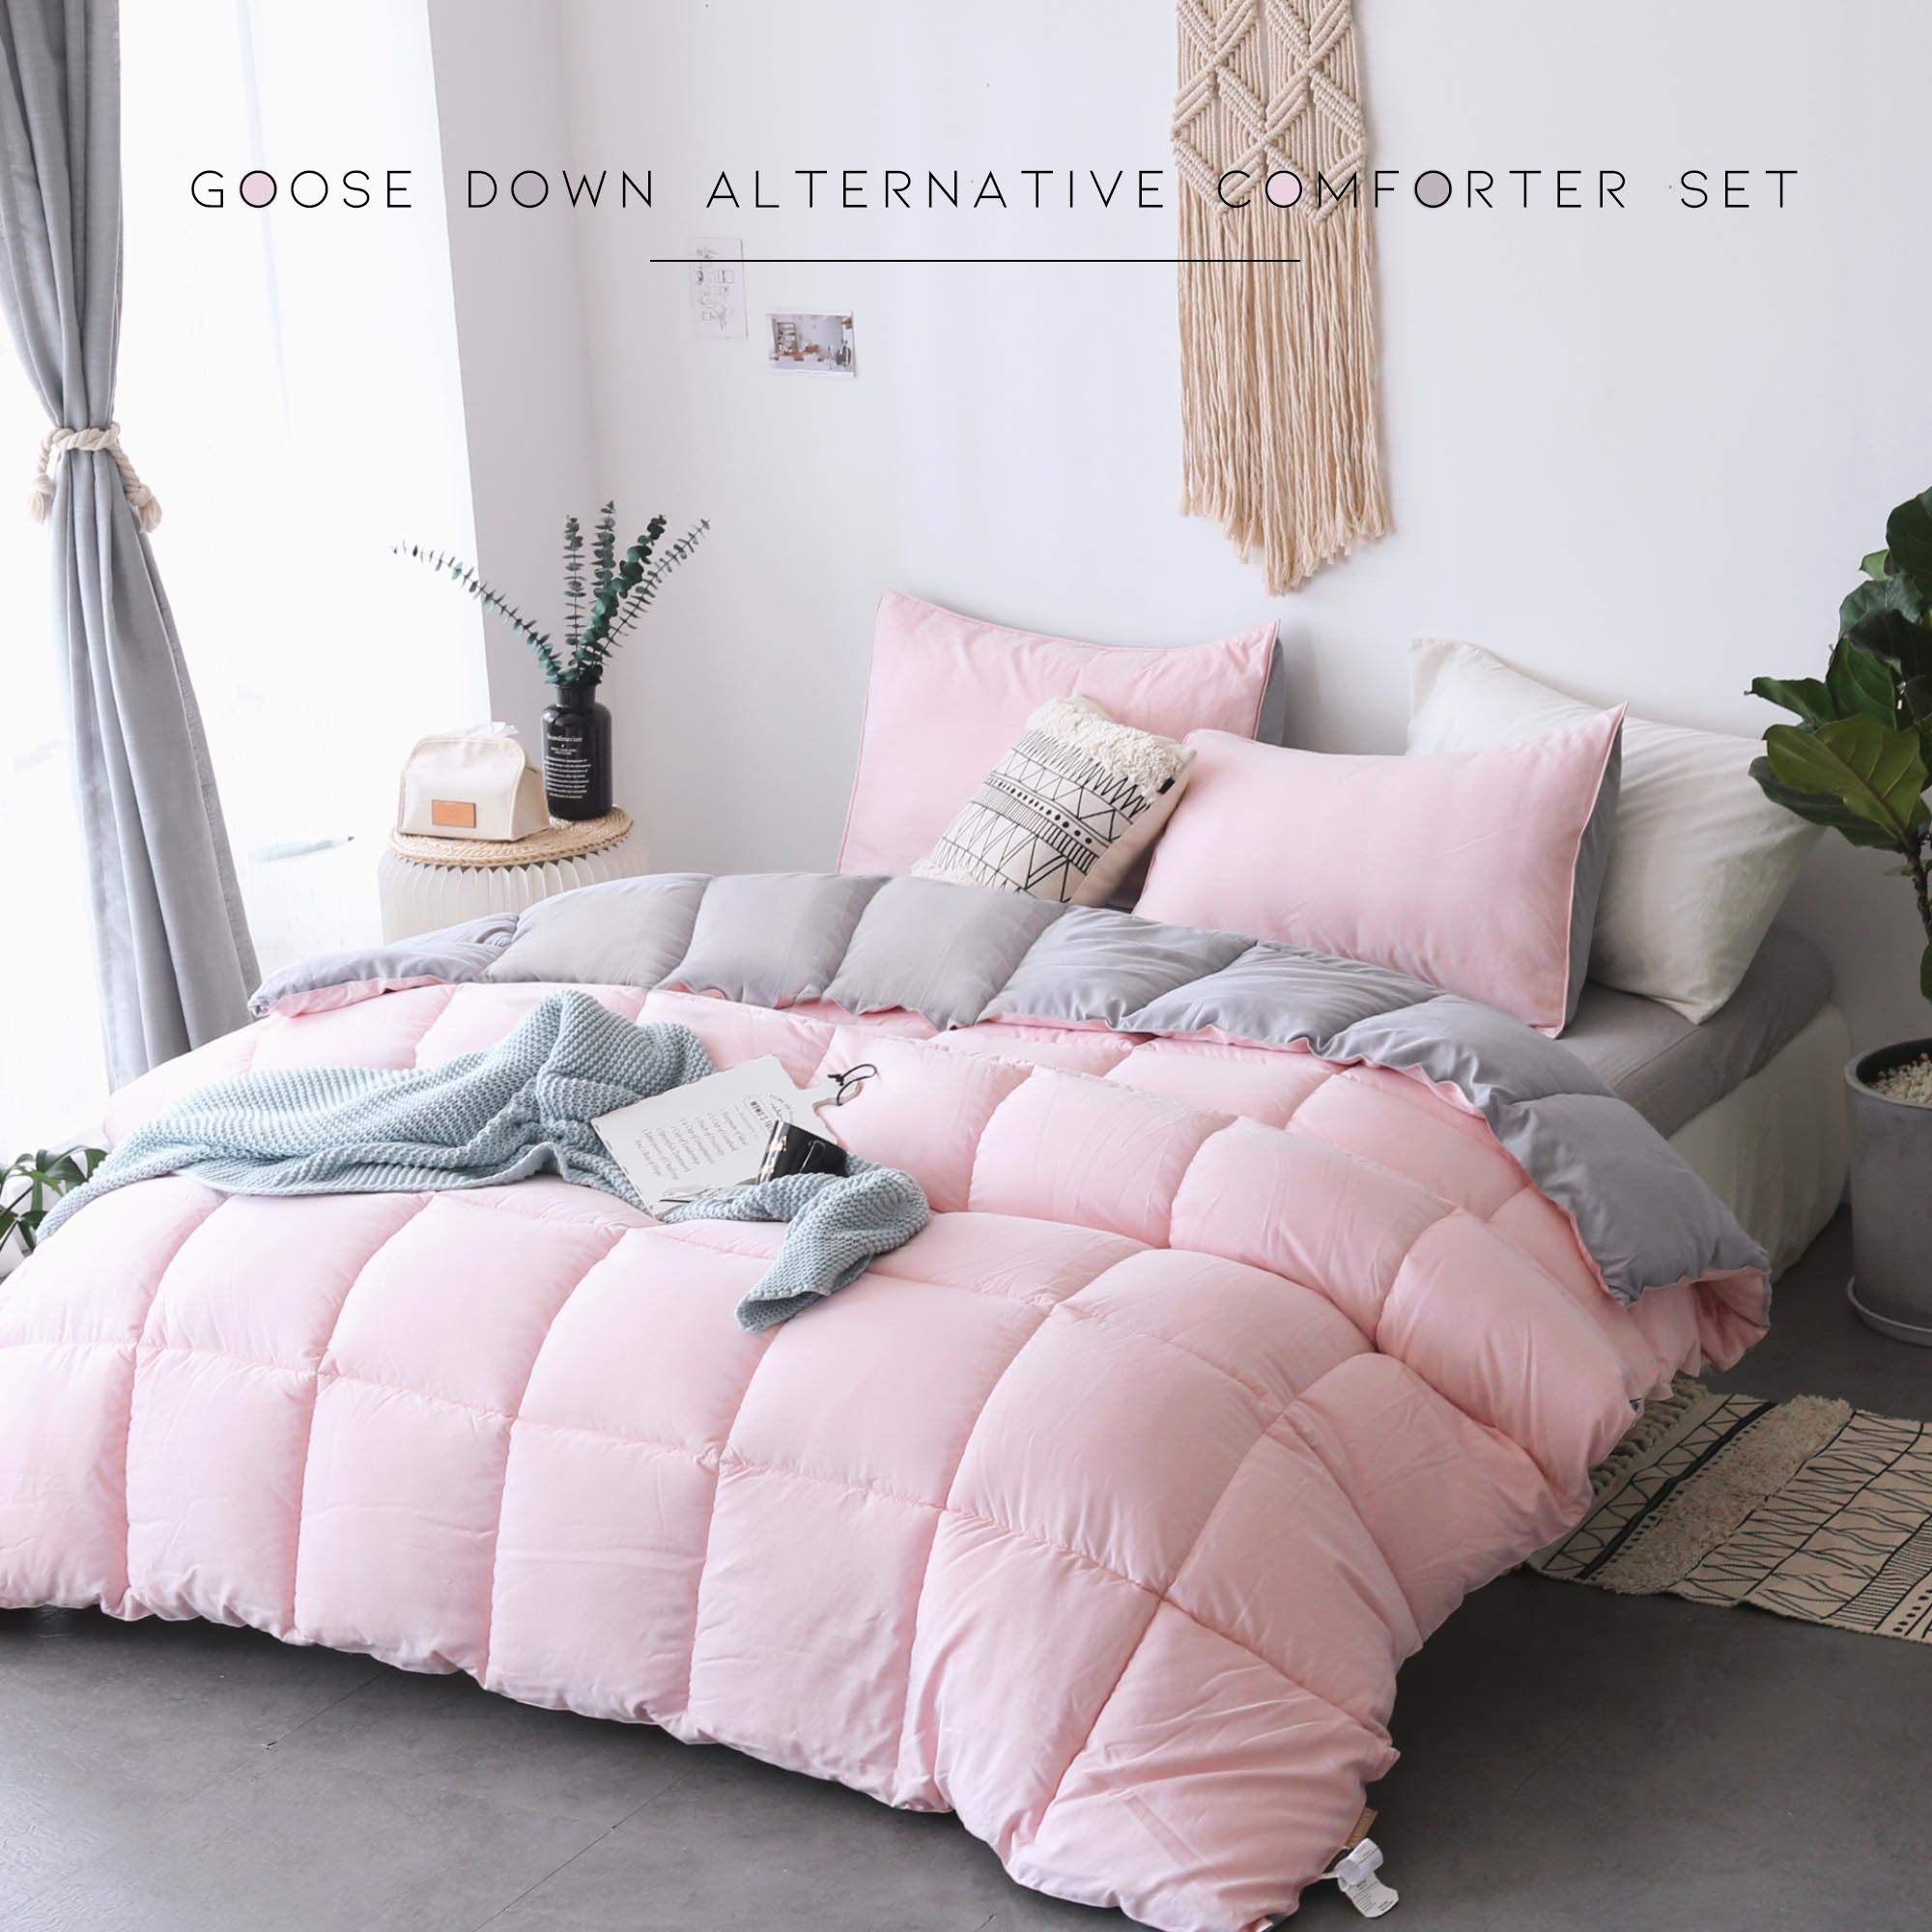 KASENTEX All All Season Down Down Alternative Quilted Comforter Set with Sham(s) - Reversible Ultra Soft Duvet Insert Hypoallergenic Machine Washable, Pink Potpourri/Quartz Silver by KASENTEX (Image #4)